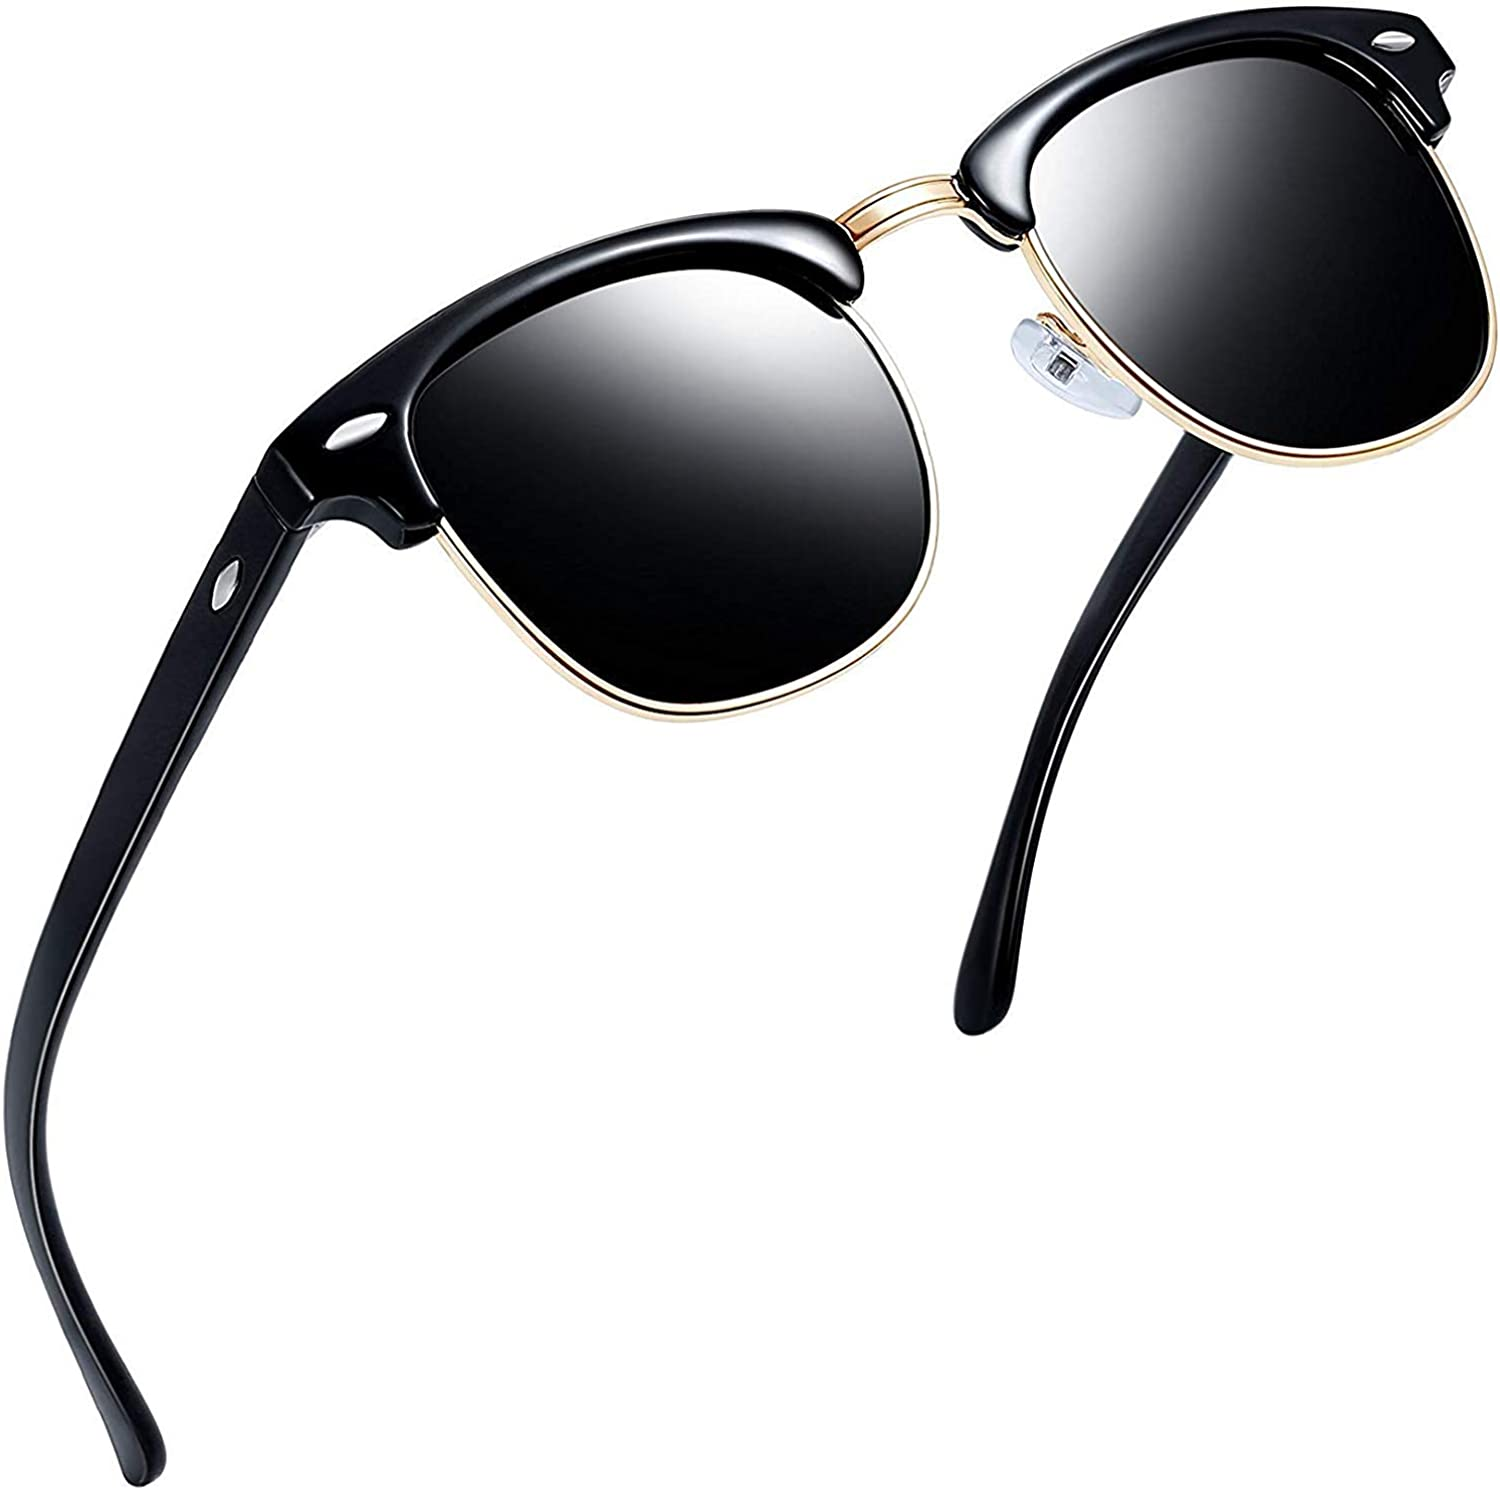 Joopin Semi-Rimless Polarised Sunglasses for Men UV400 Protection Classic Horn Rimmed Half Frame Womens Sunglasses Brand Designer All Black